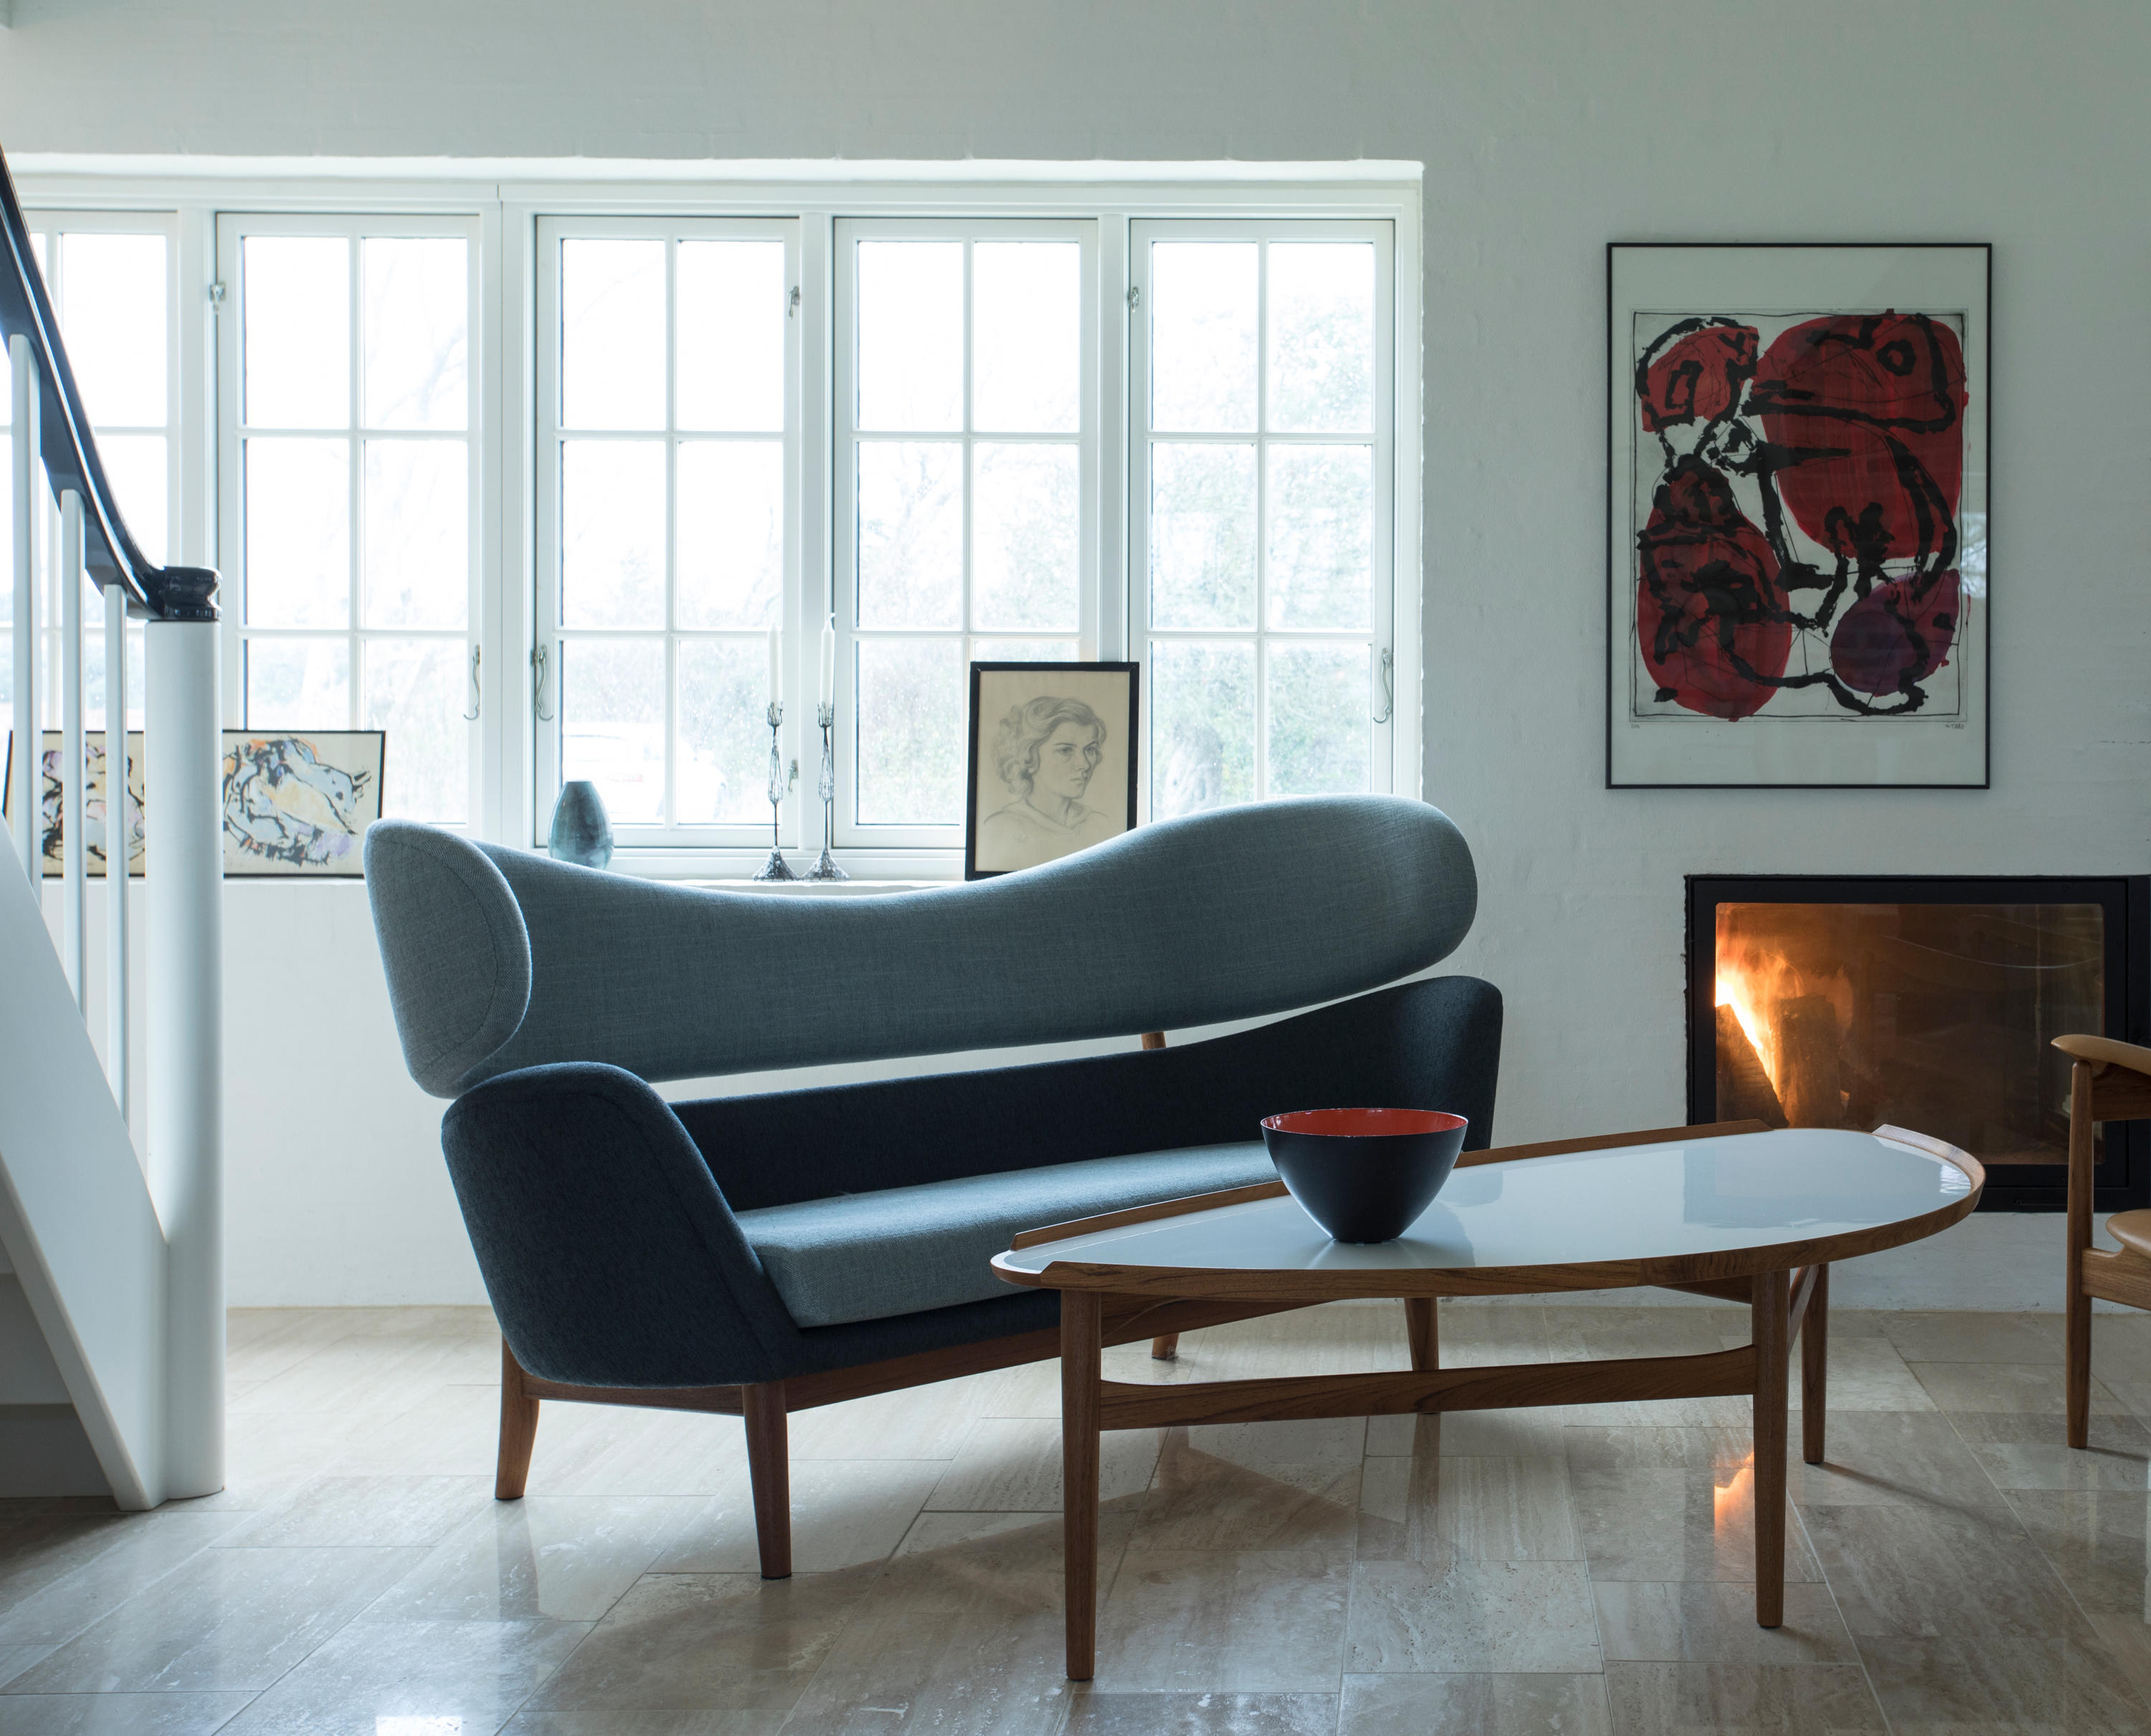 ... Baker Sofa By House Of Finn Juhl   Onecollection ...